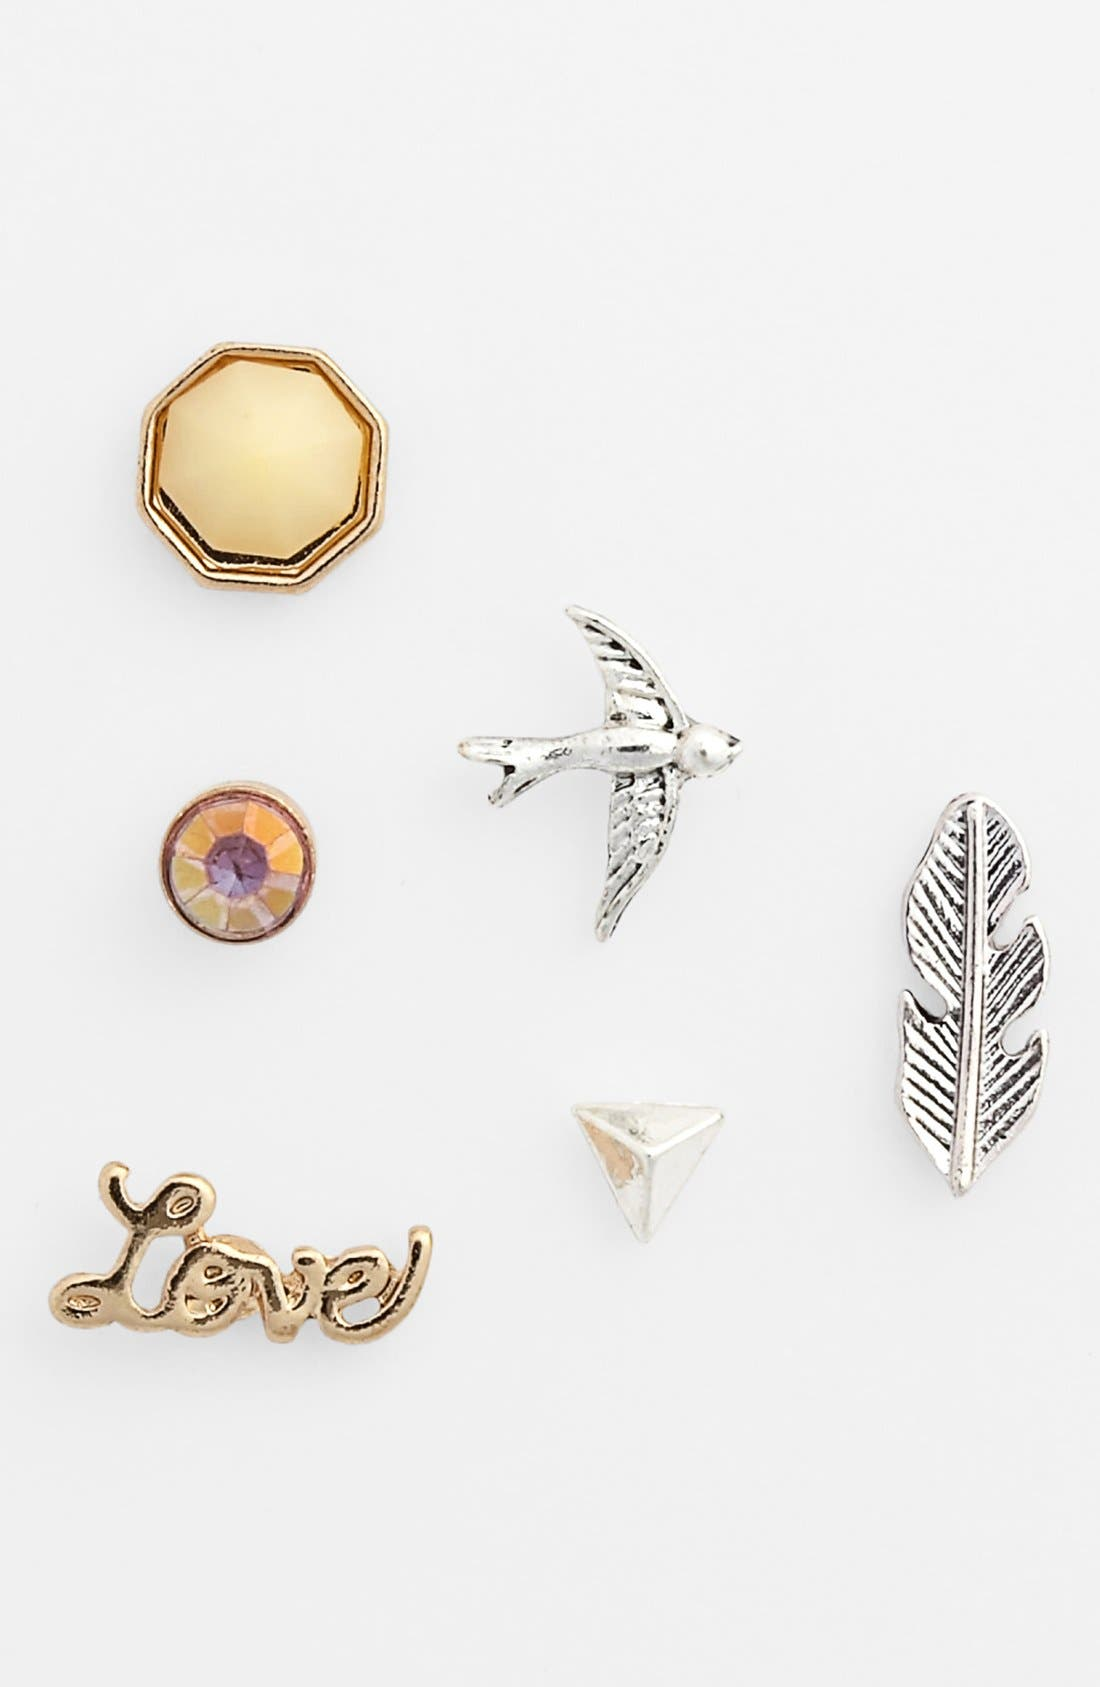 Alternate Image 1 Selected - Statements by DCK 'Mix & Match' Stud Earrings (Set of 6)